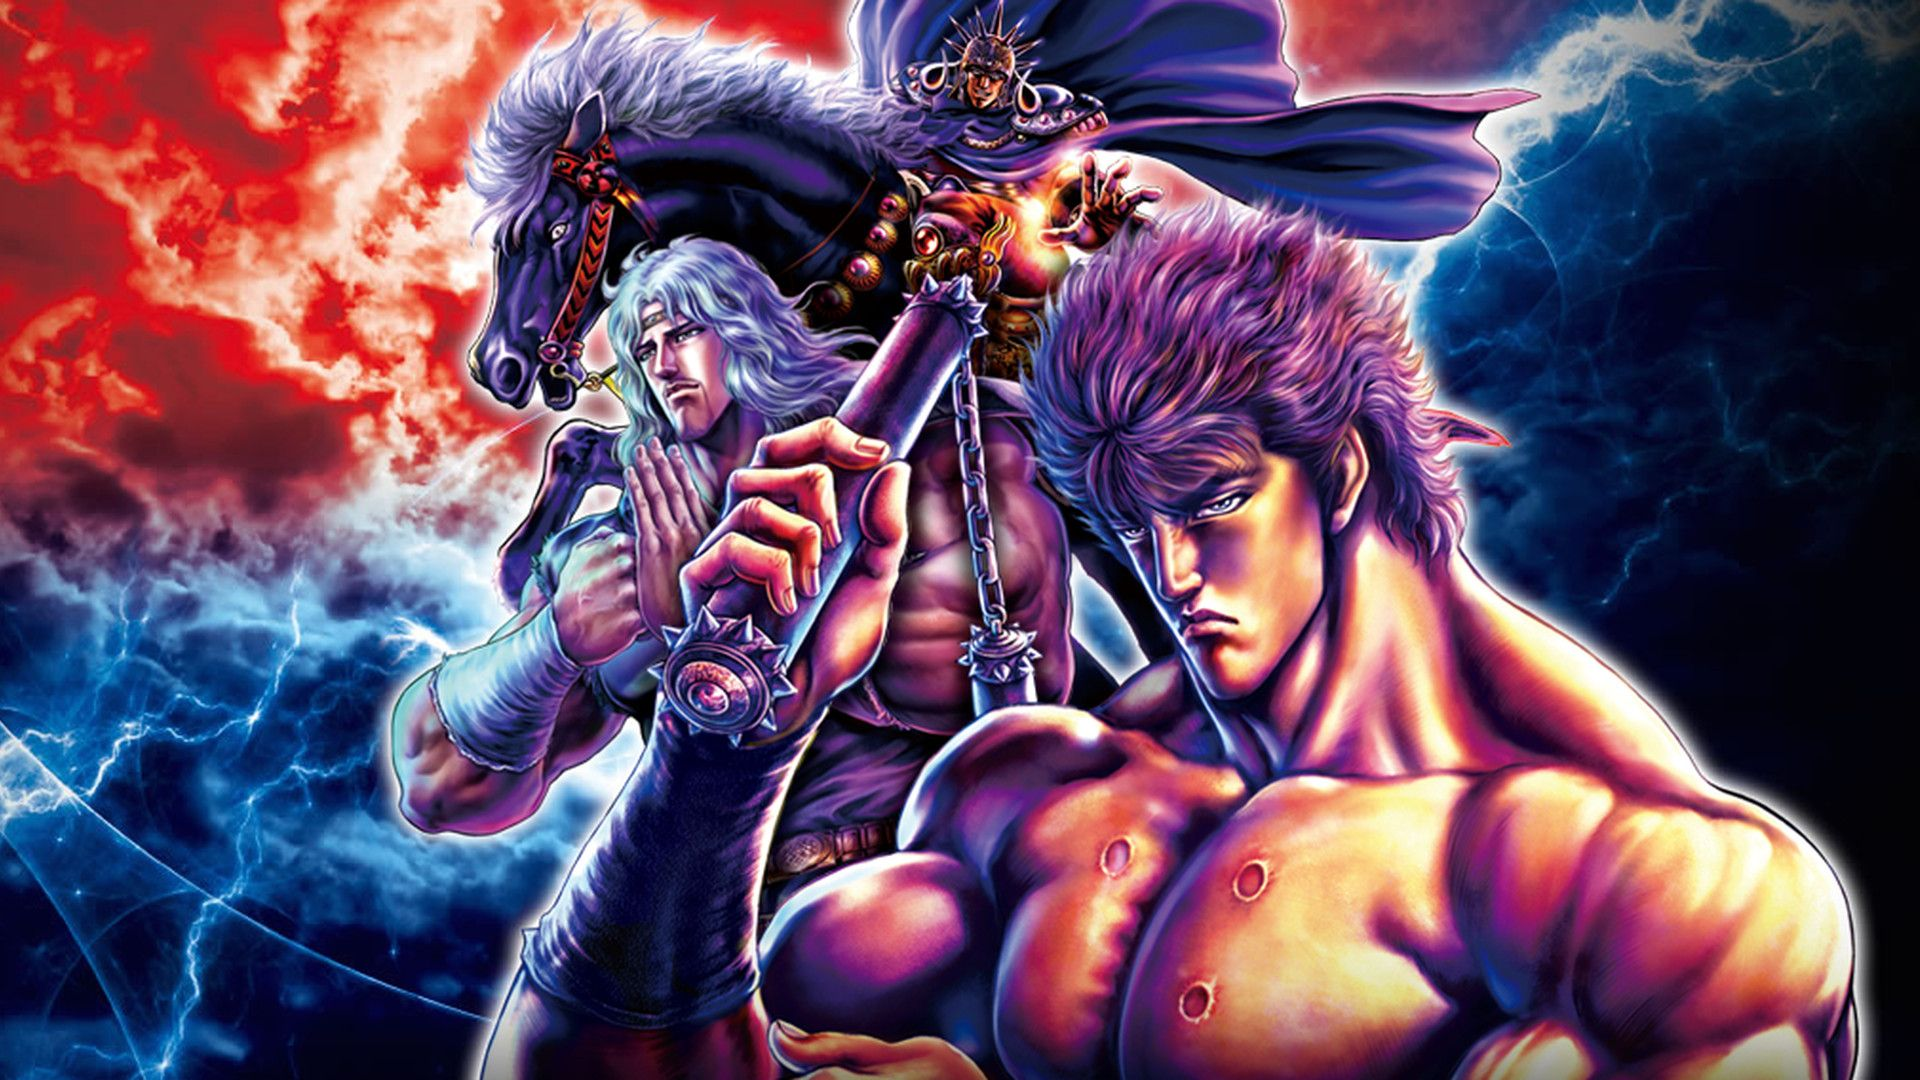 Fist Of The North Star Kenshiro Toki Raoh Hokuto Martial